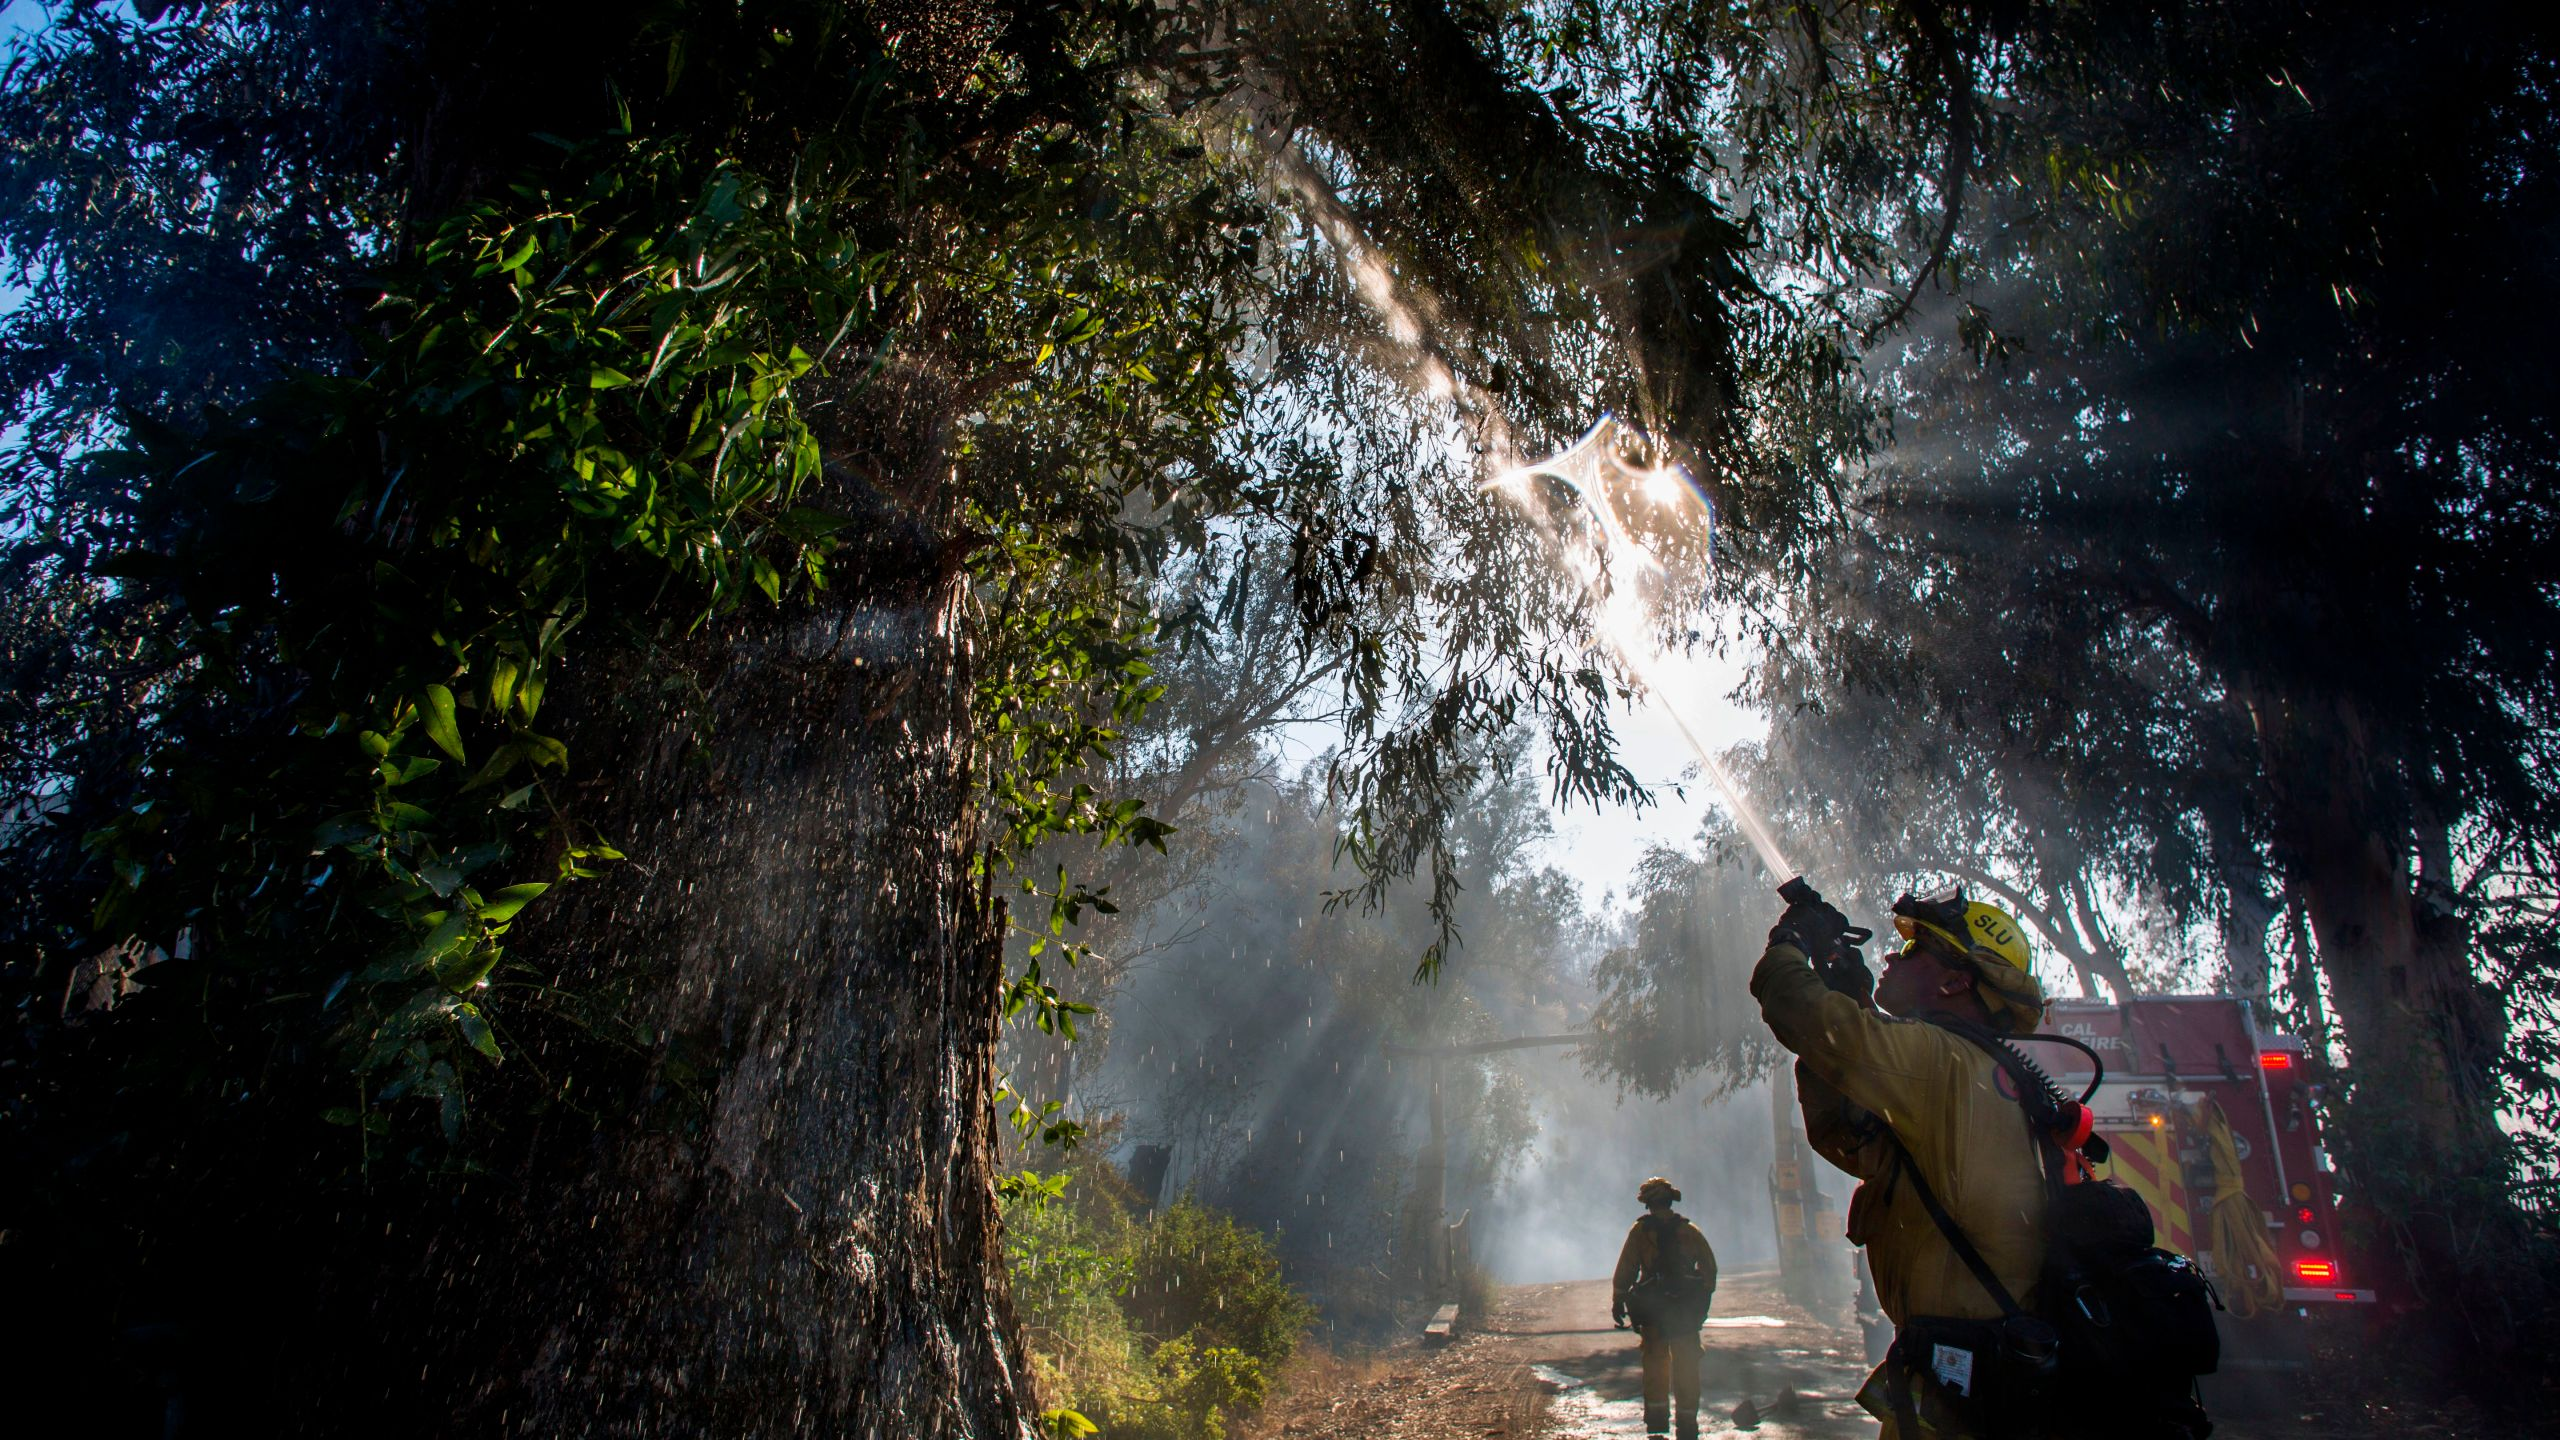 Firefighters douse flames in a tree at South Mountain Road during the Maria Fire, in Santa Paula, Calif. on Nov. 1, 2019. (Credit: Apu Gomes / AFP via Getty Images)